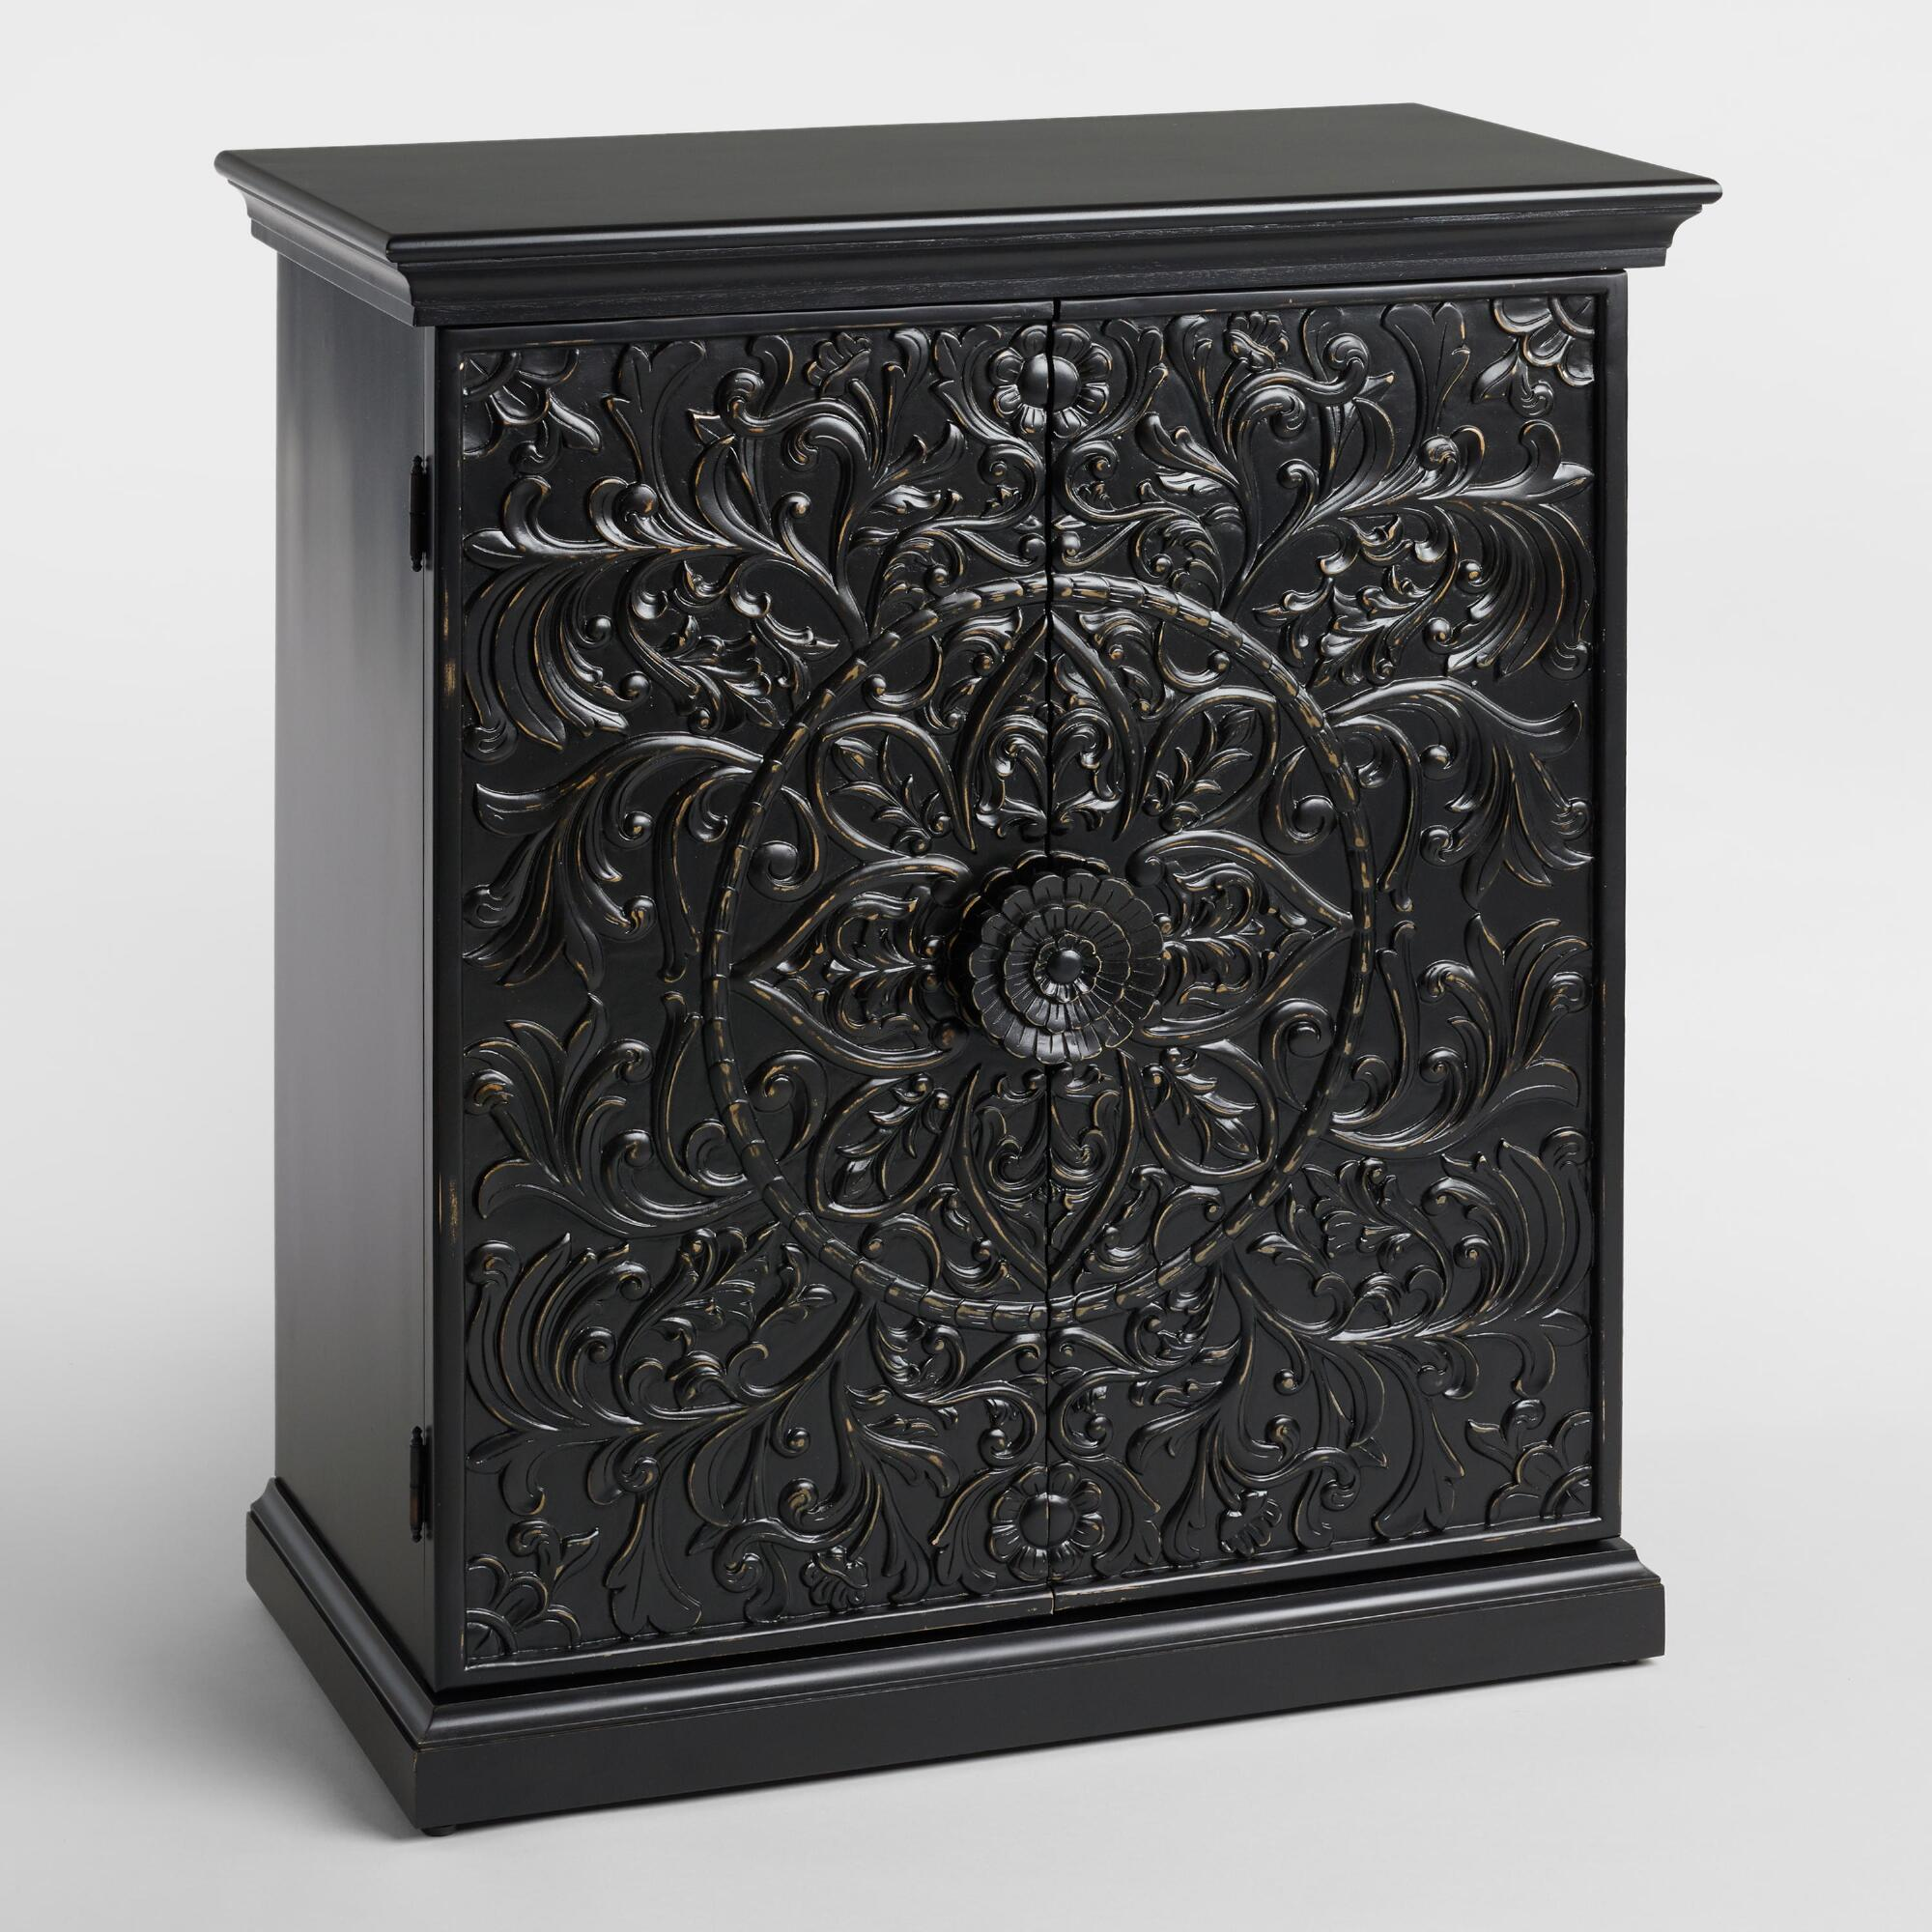 Mahogany antique furniture 2 best images collections hd for gadget - Antique Black Carved Bar